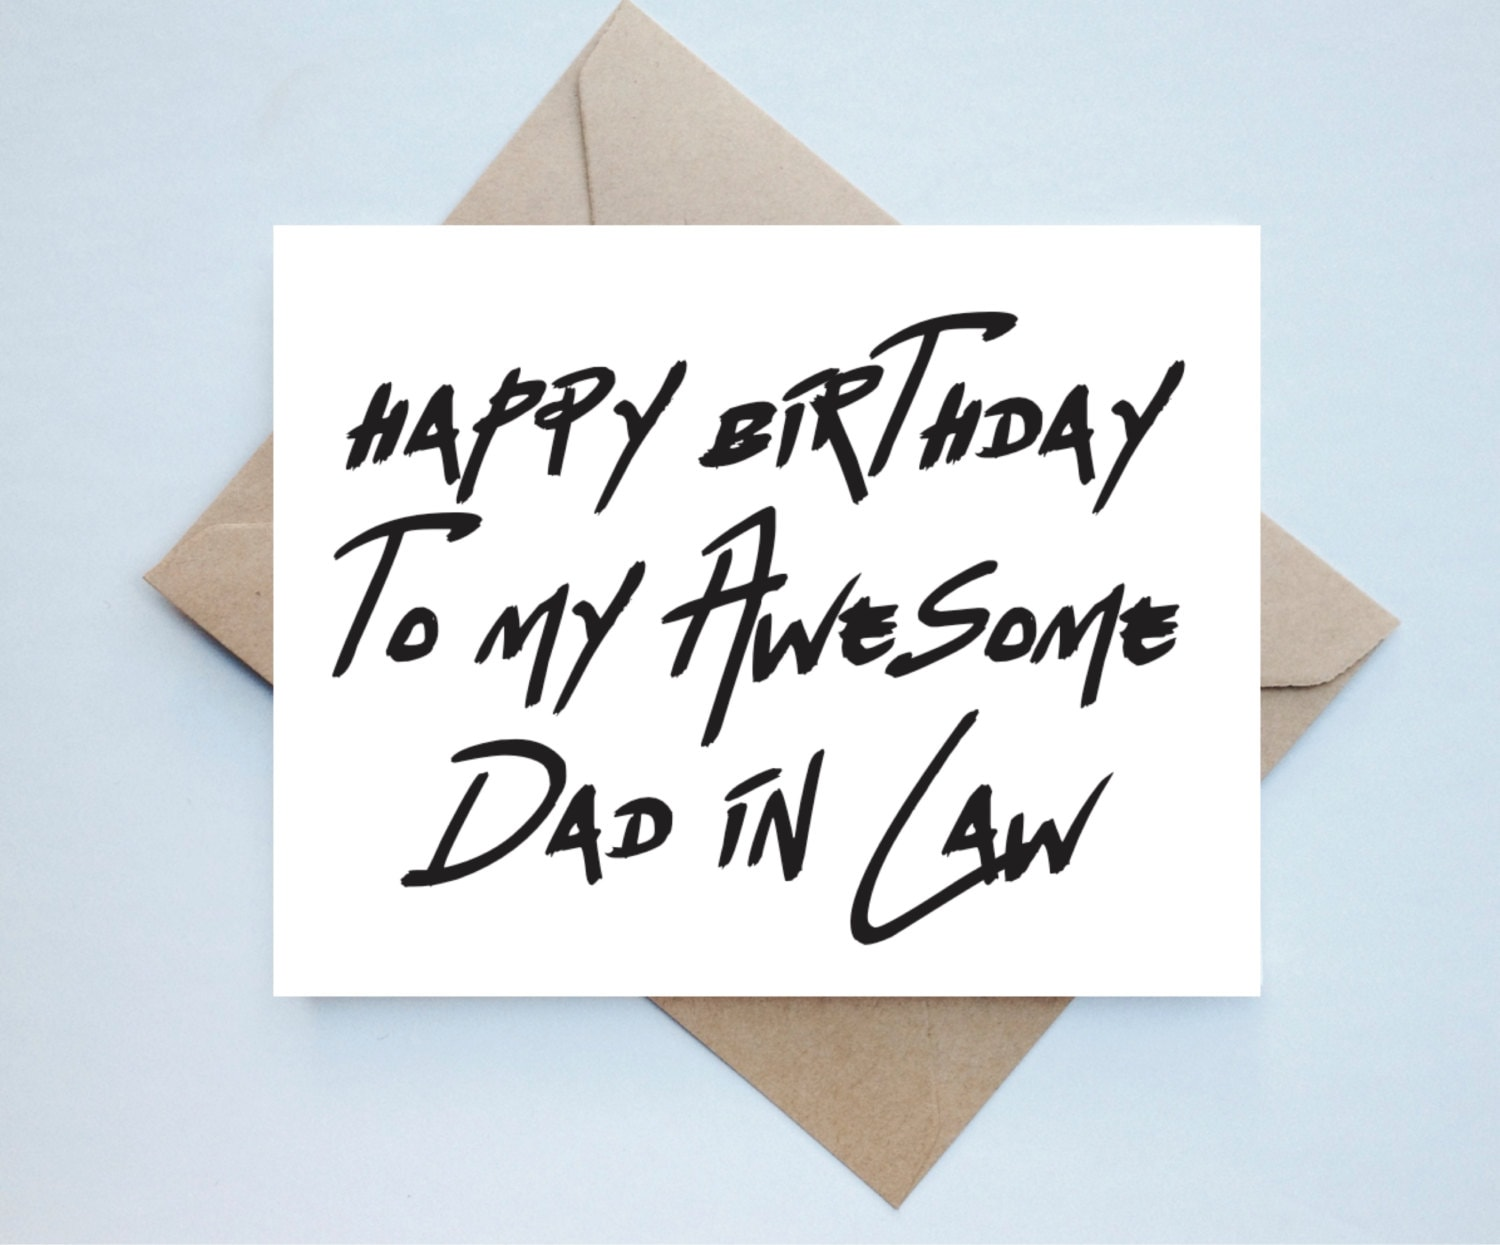 Dad in law birthday card father in law dad in law zoom bookmarktalkfo Choice Image